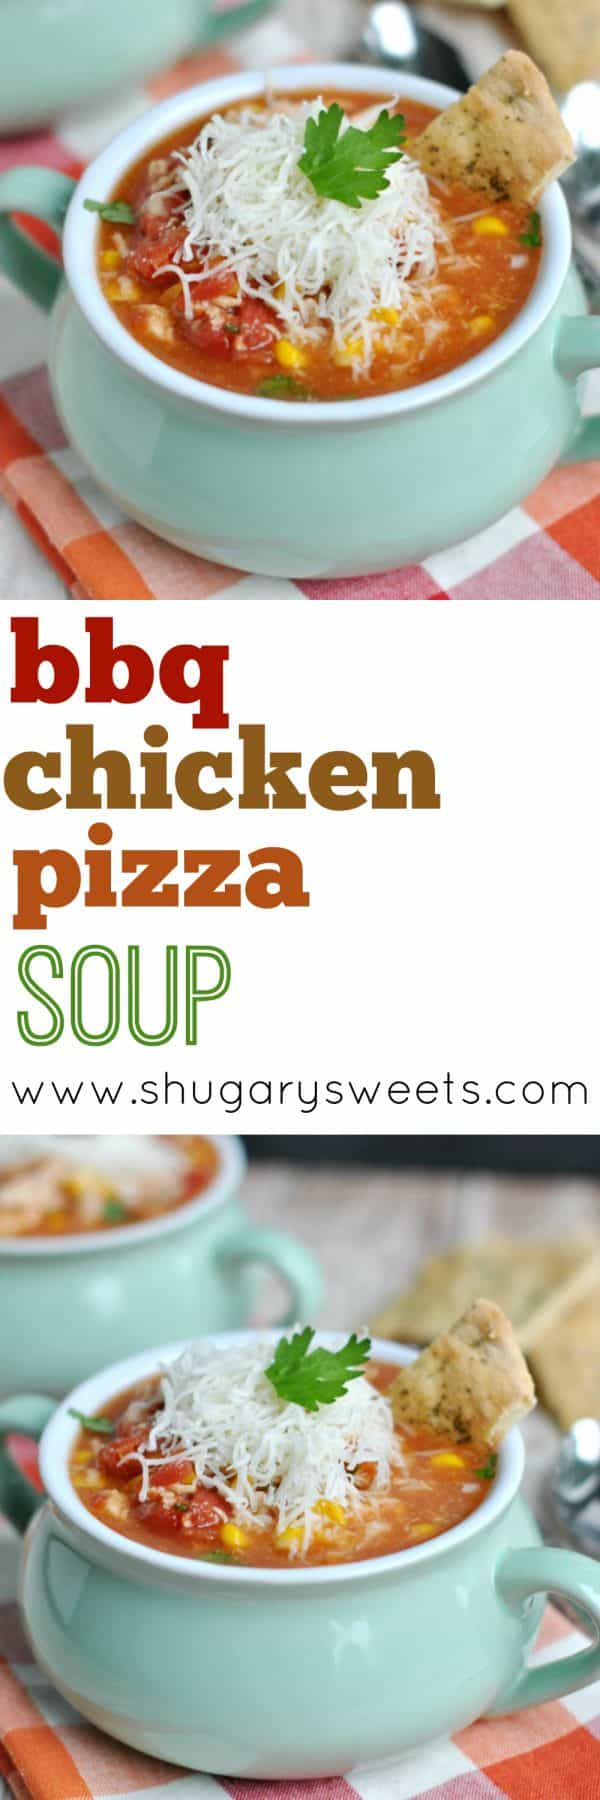 I love dinner recipes that come together in 30 minutes. Say hello to BBQ Chicken Pizza Soup. We made some Pizza Crust dippers to go with this delicious, hearty soup too!